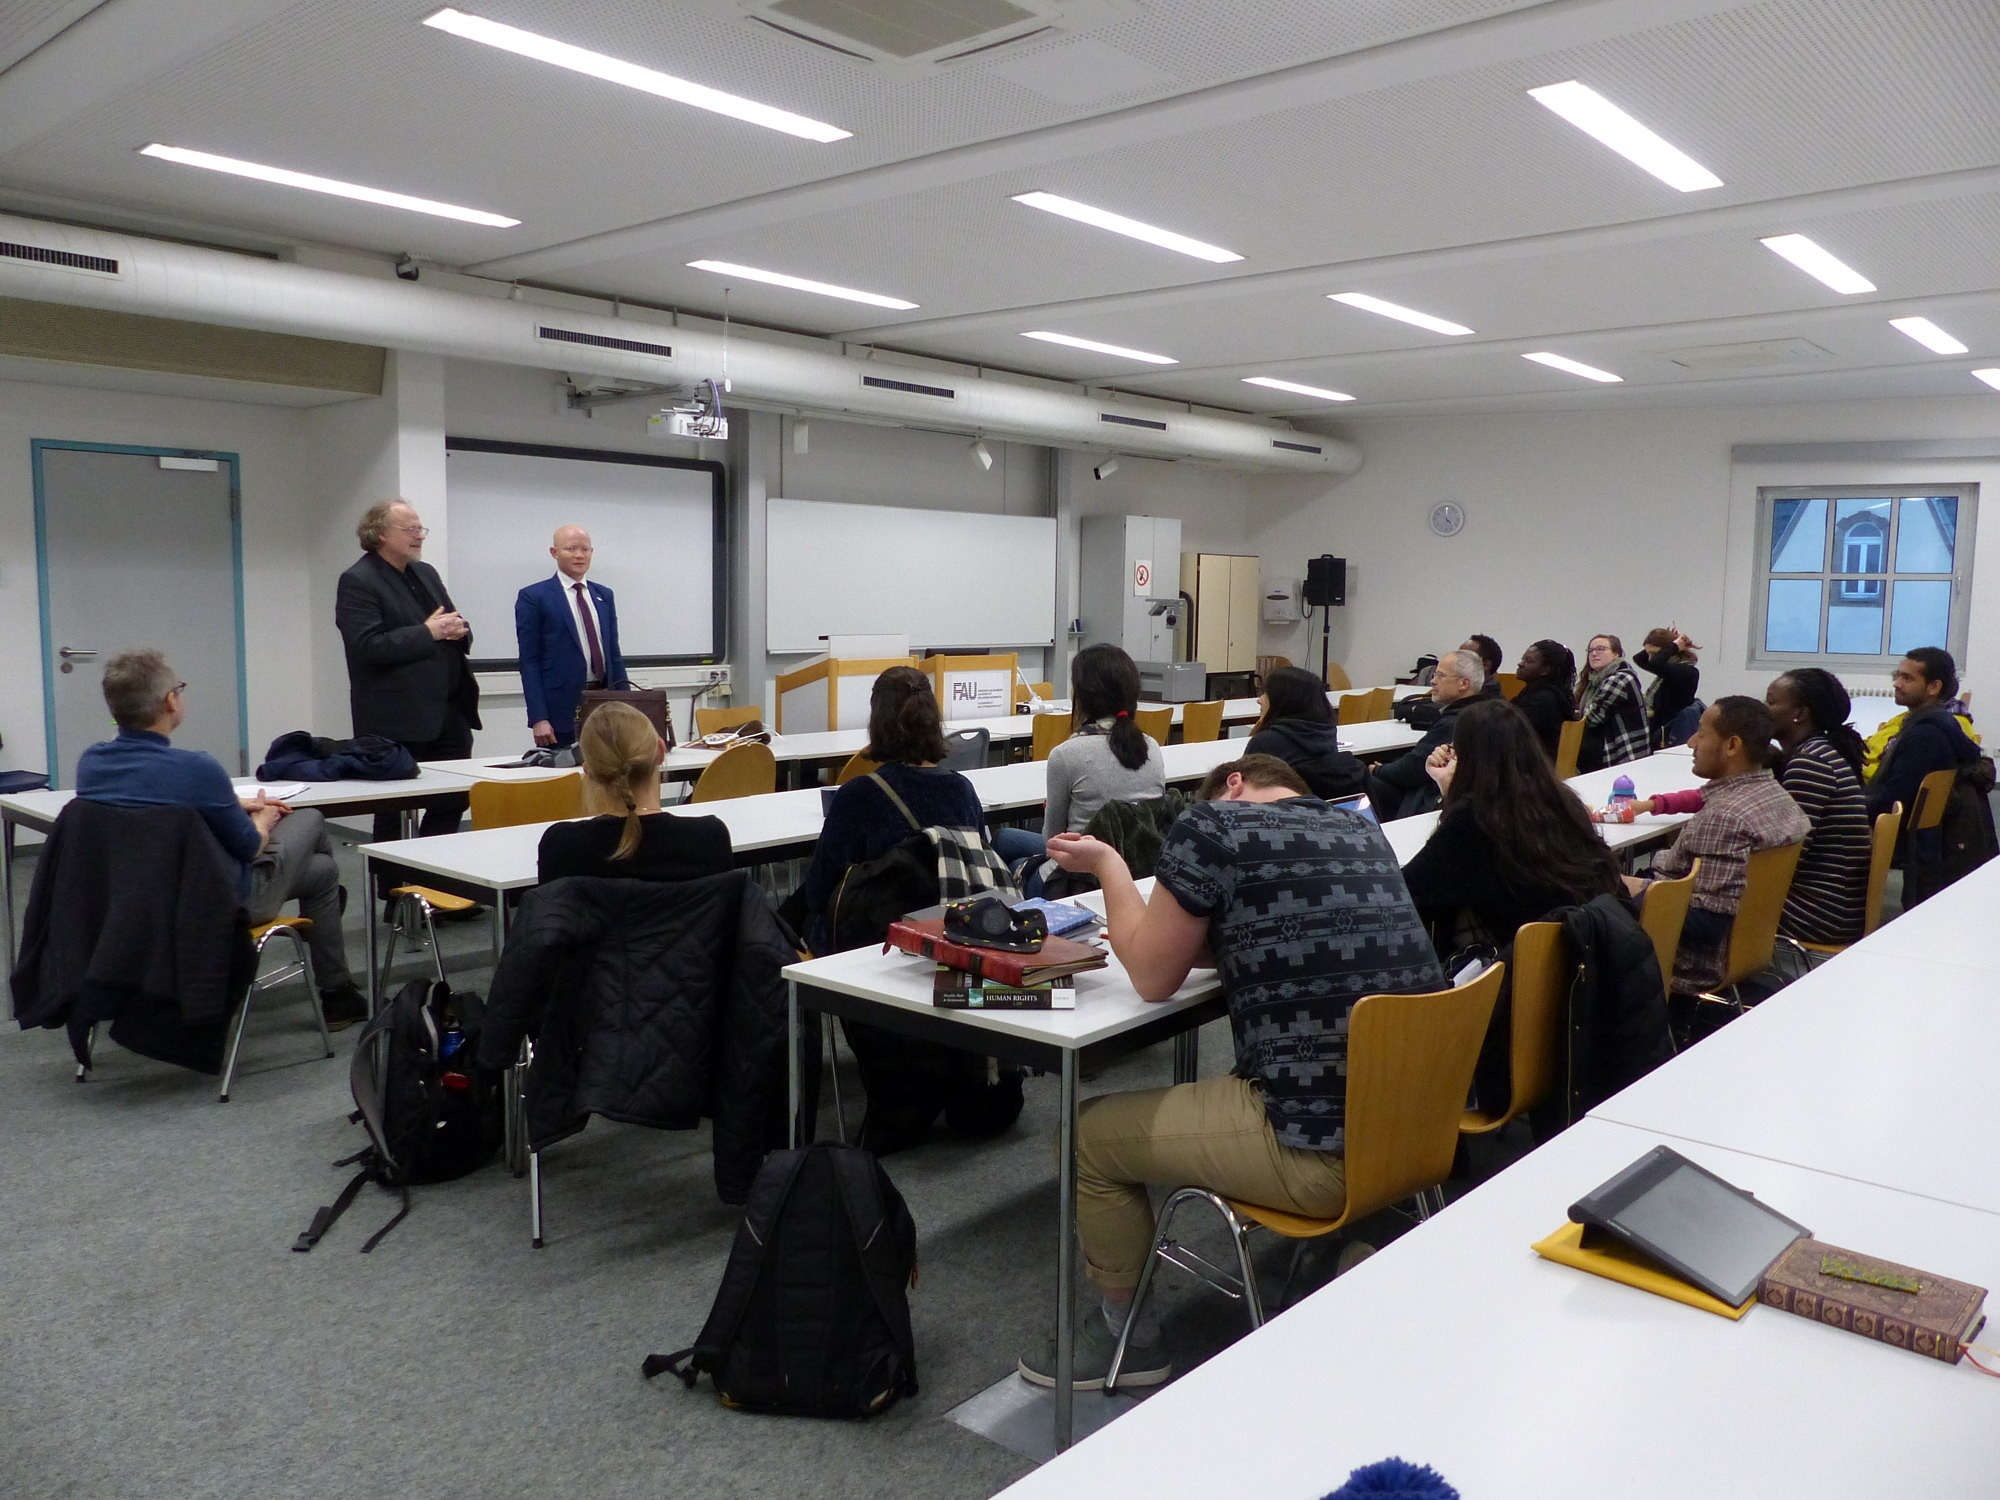 Prof. Bielefeldt introduces Dr. Possi to a group of human rights students